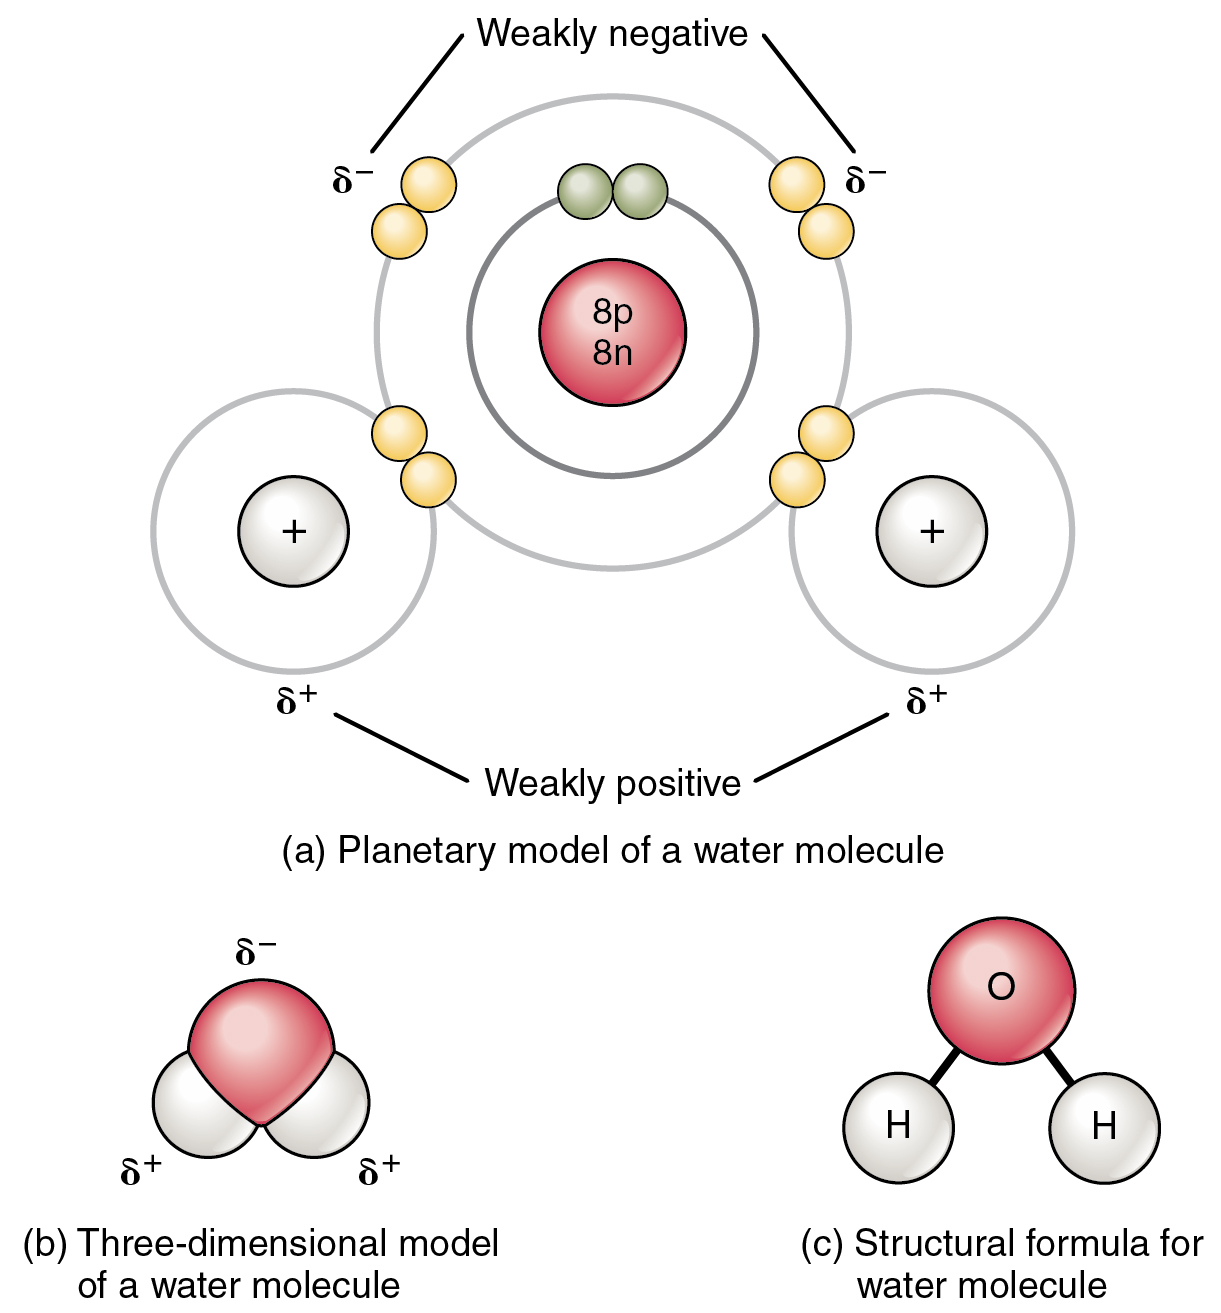 This figure shows the structure of a water molecule. The top panel shows two oxygen atoms and one hydrogen atom with electrons in orbit and the shared electrons. The middle panel shows a three-dimensional model of a water molecule and the bottom panel shows the structural formula for water.